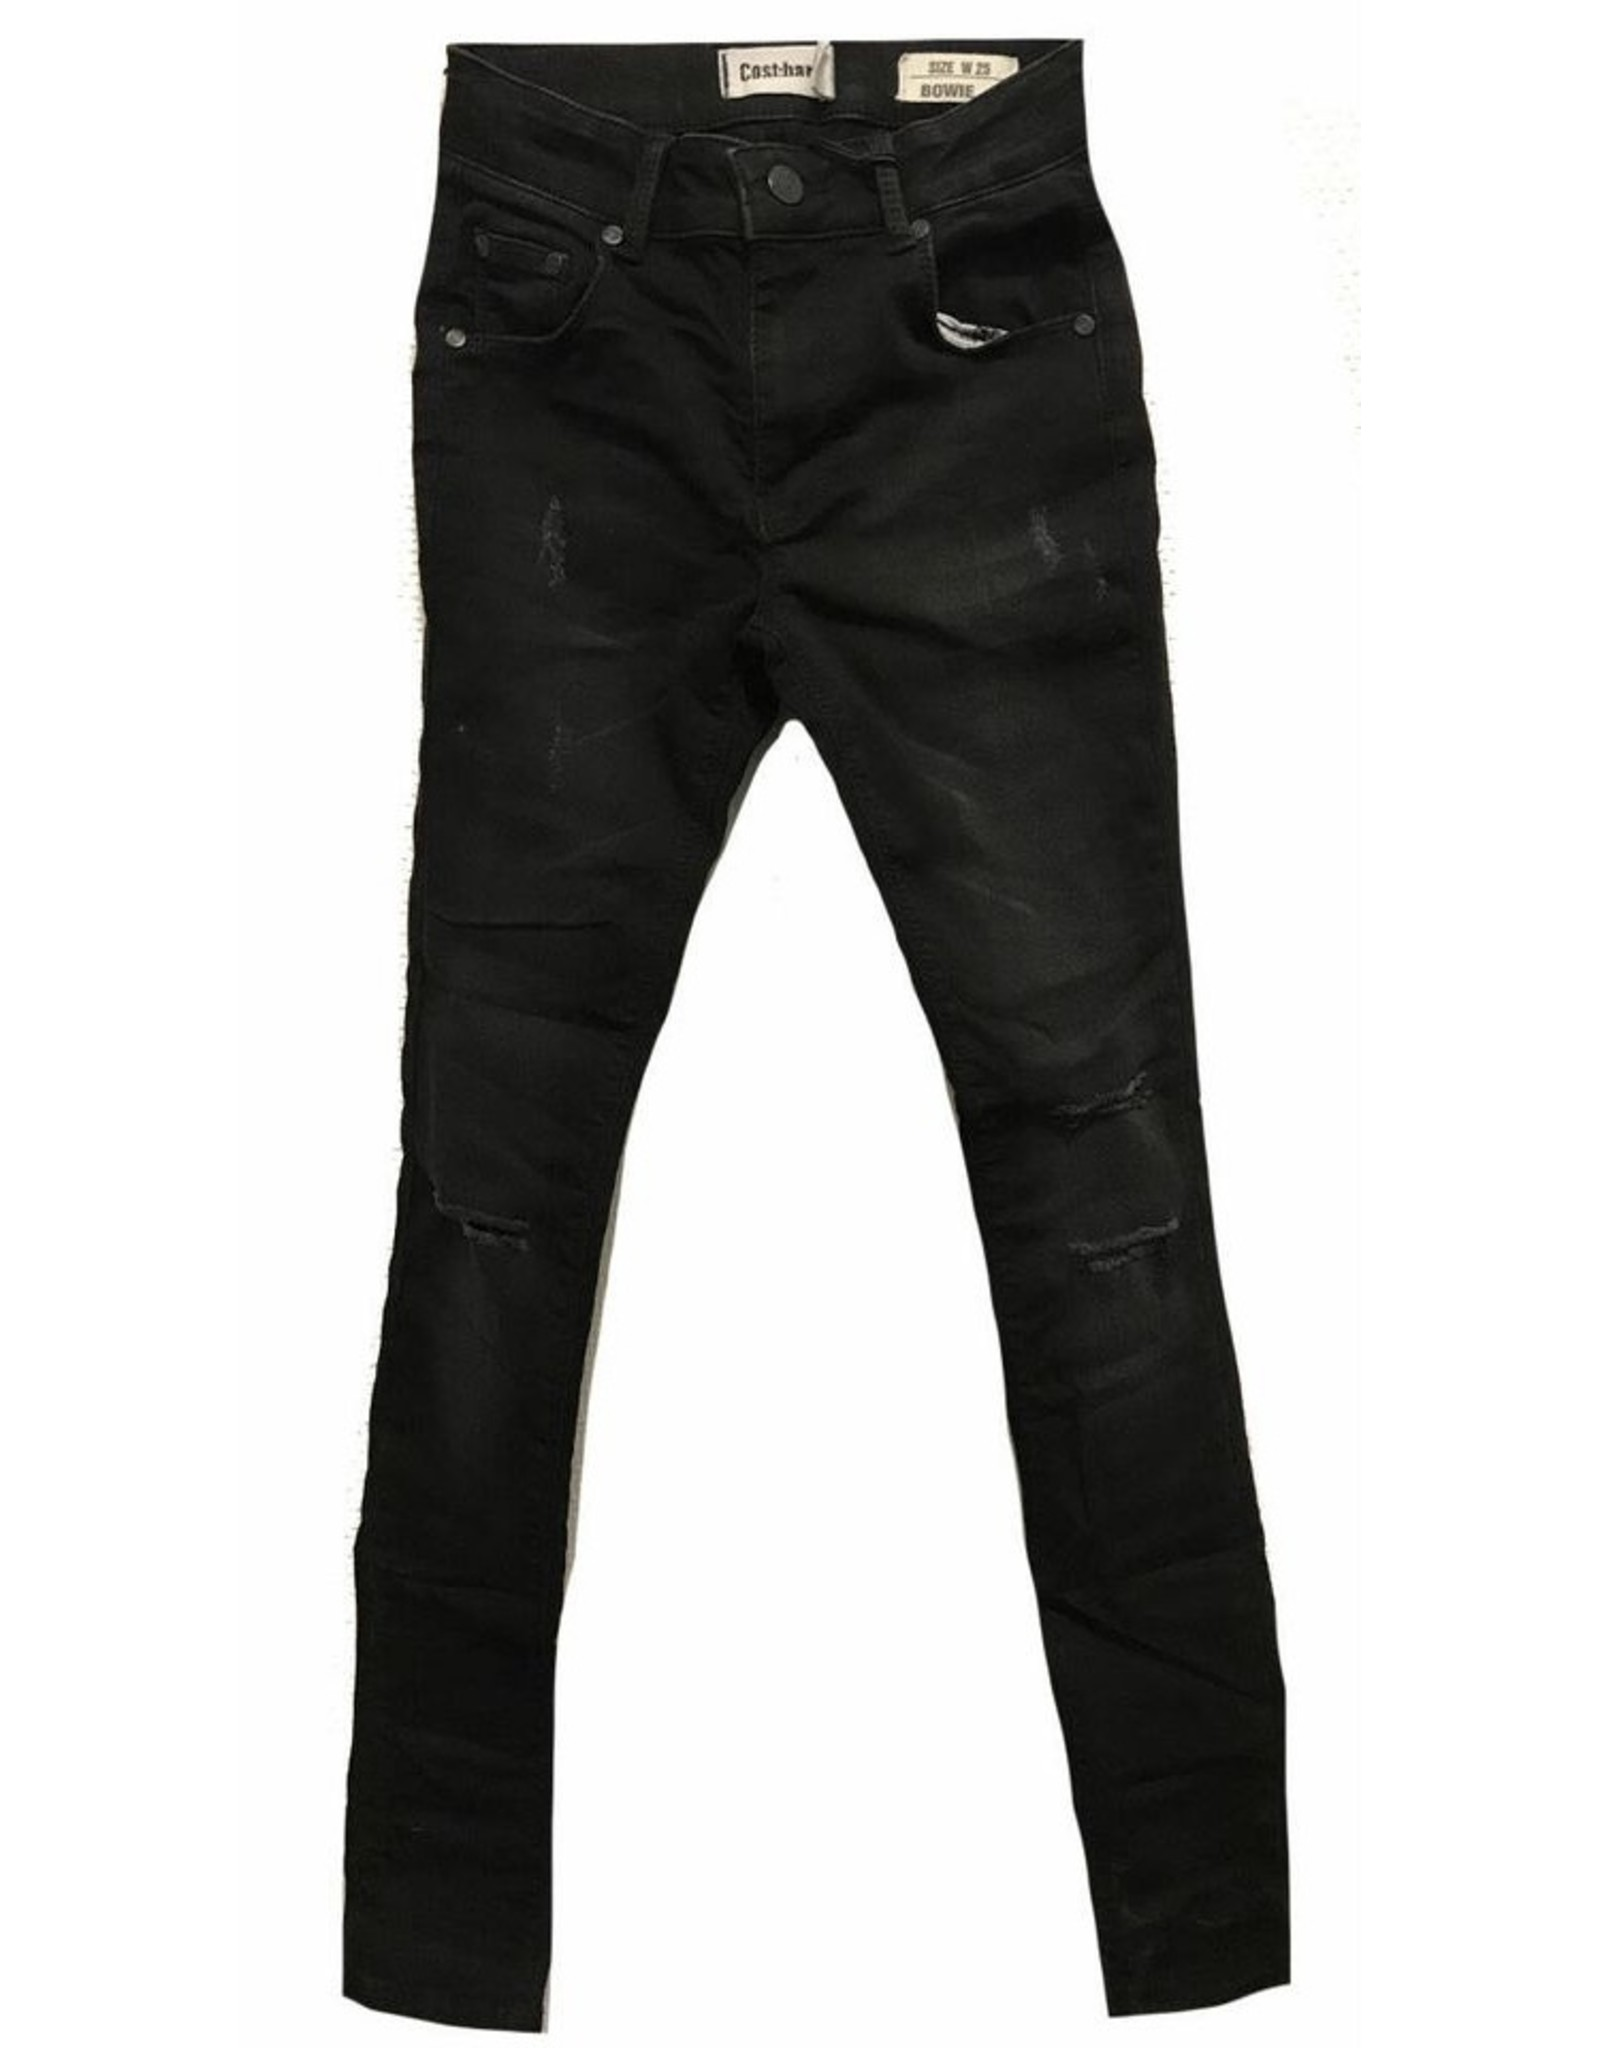 Cost Bart Bowie C4821 Jeans